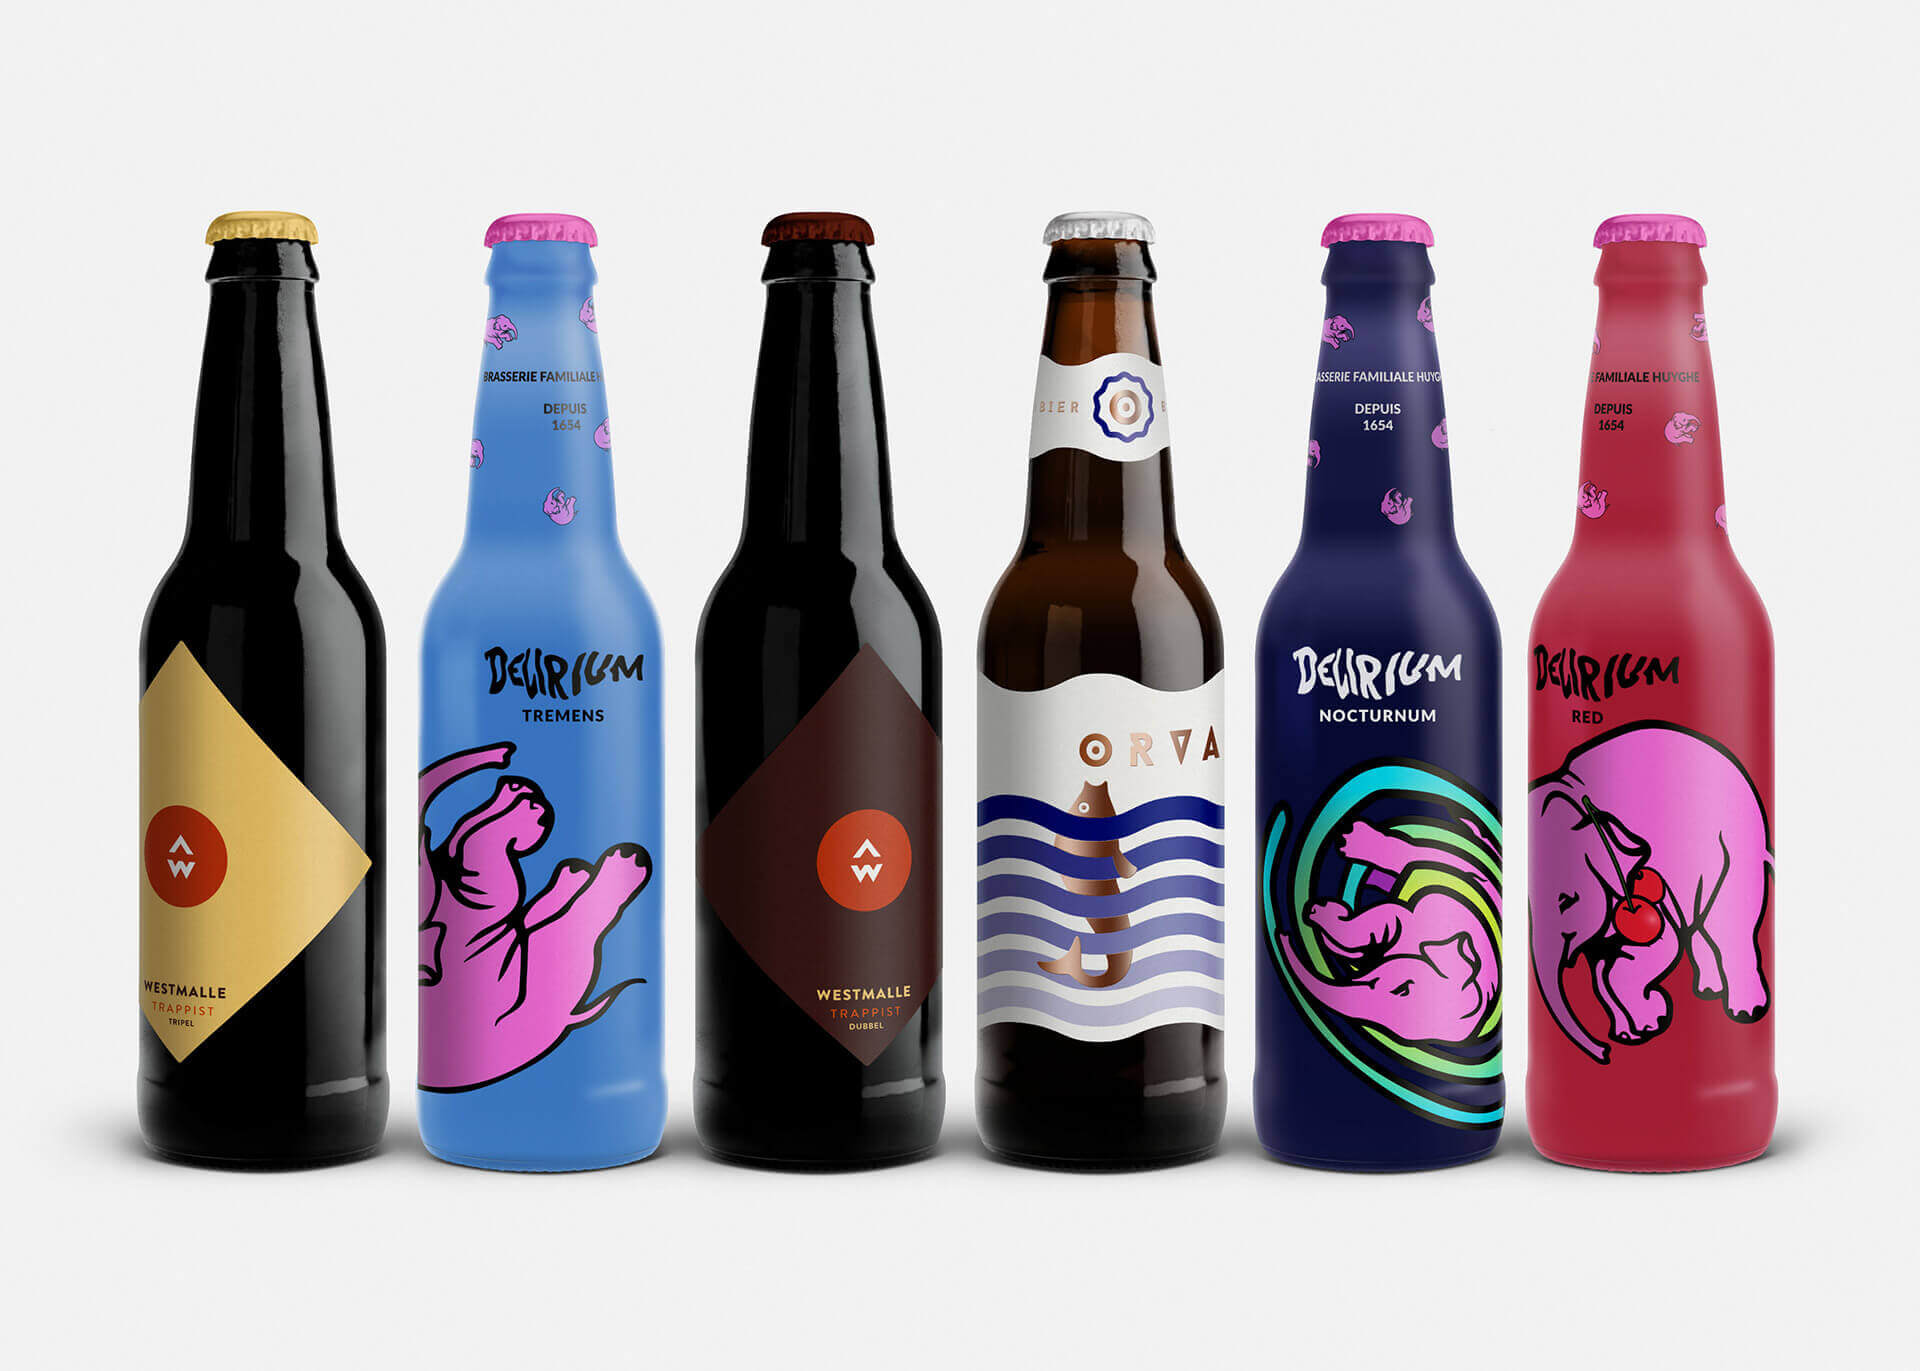 Next generation of Belgian Beer labels by Ján Bača